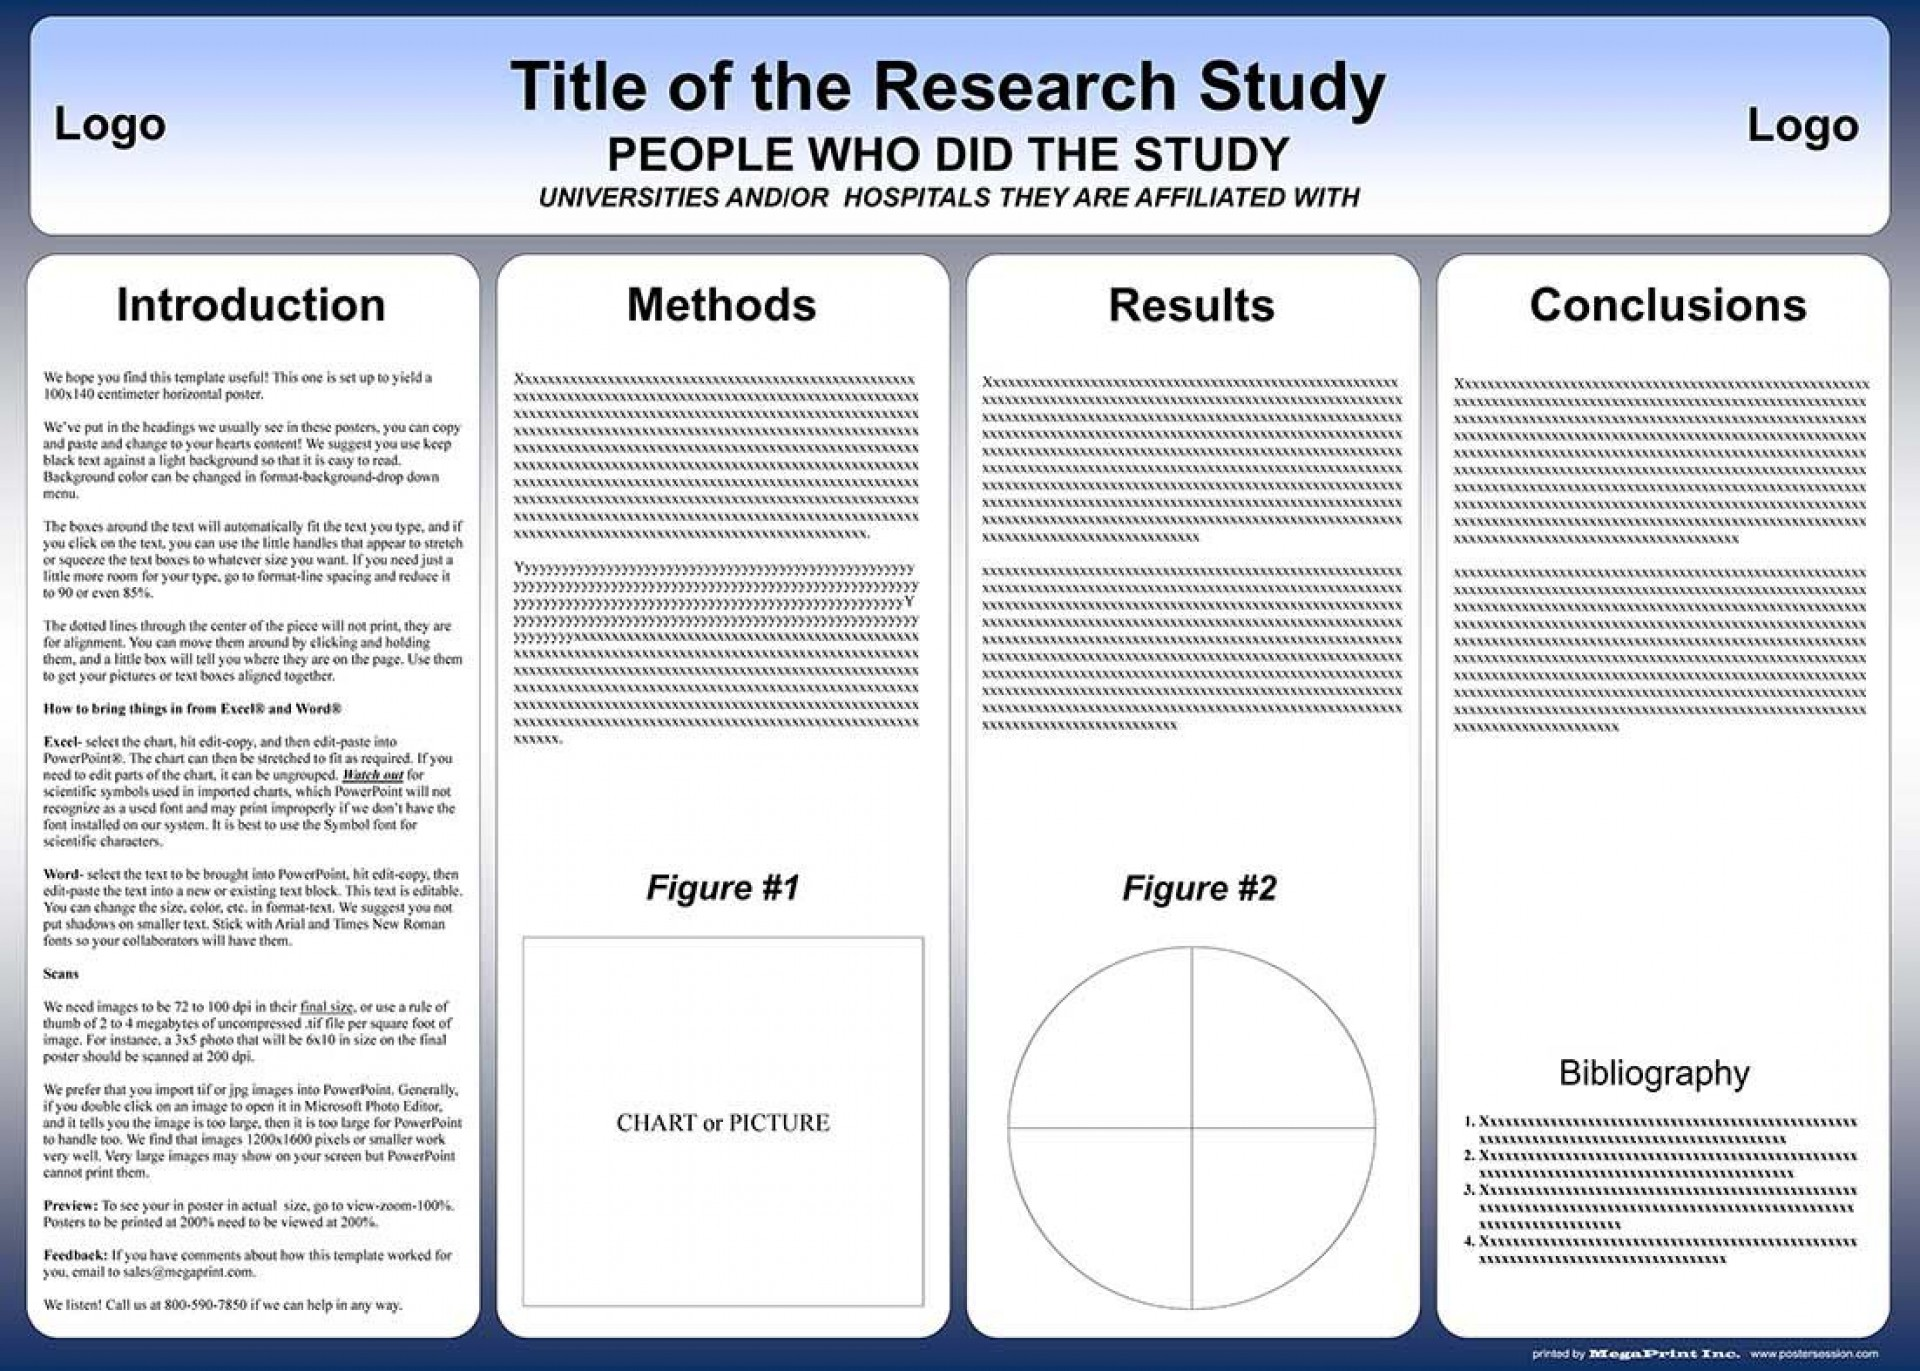 005 Stupendou Research Poster Template Powerpoint Photo  Scientific Ppt1920